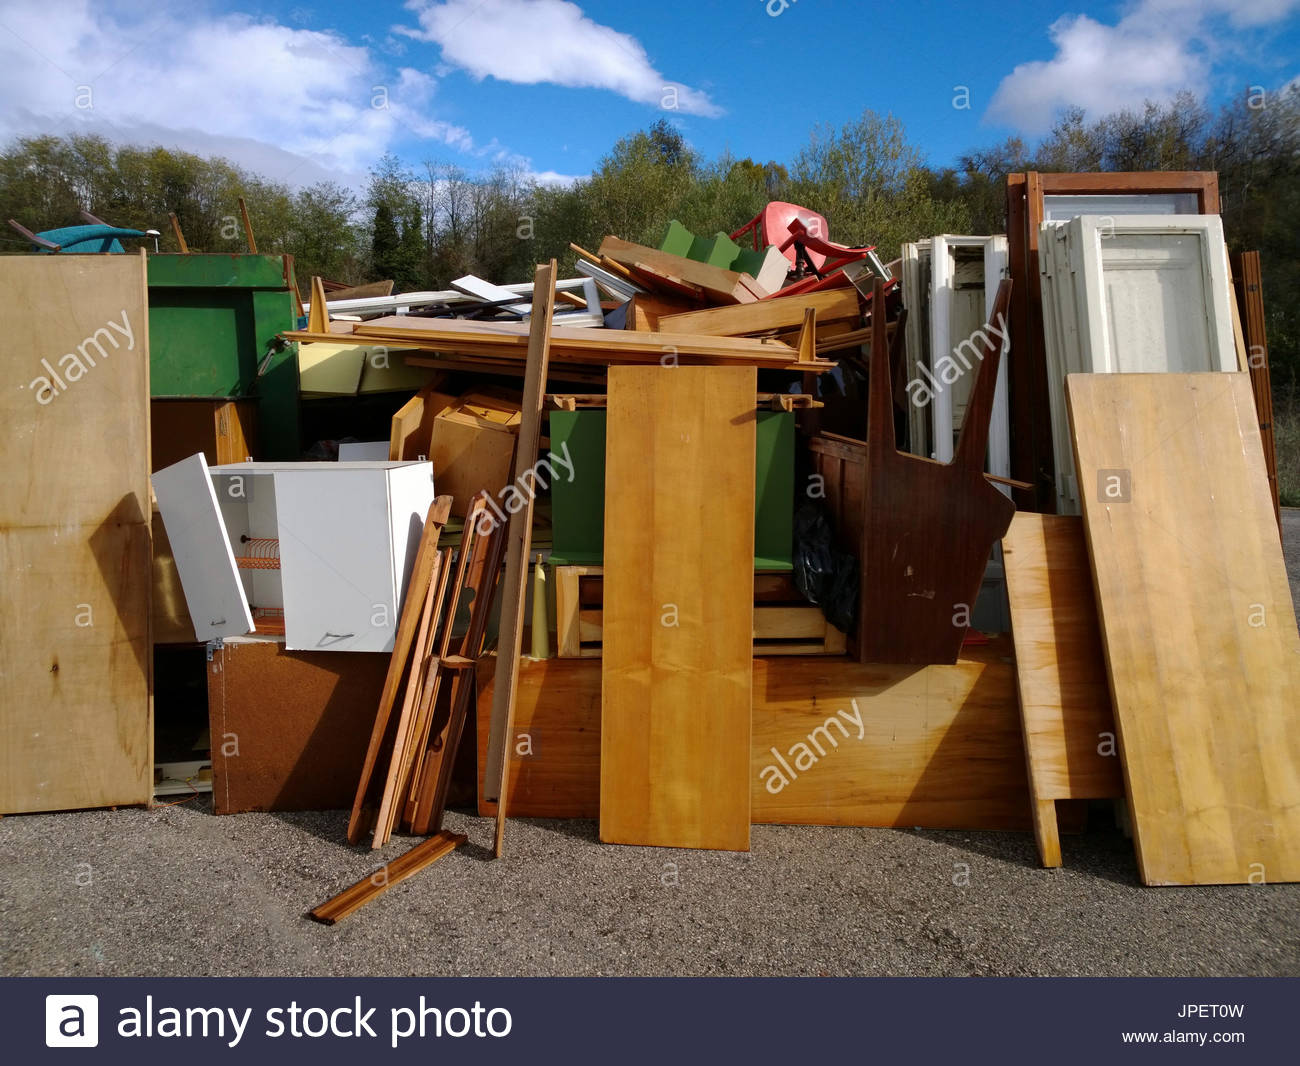 old wooden furnitures piled up in an authorized recycling station - Stock Image